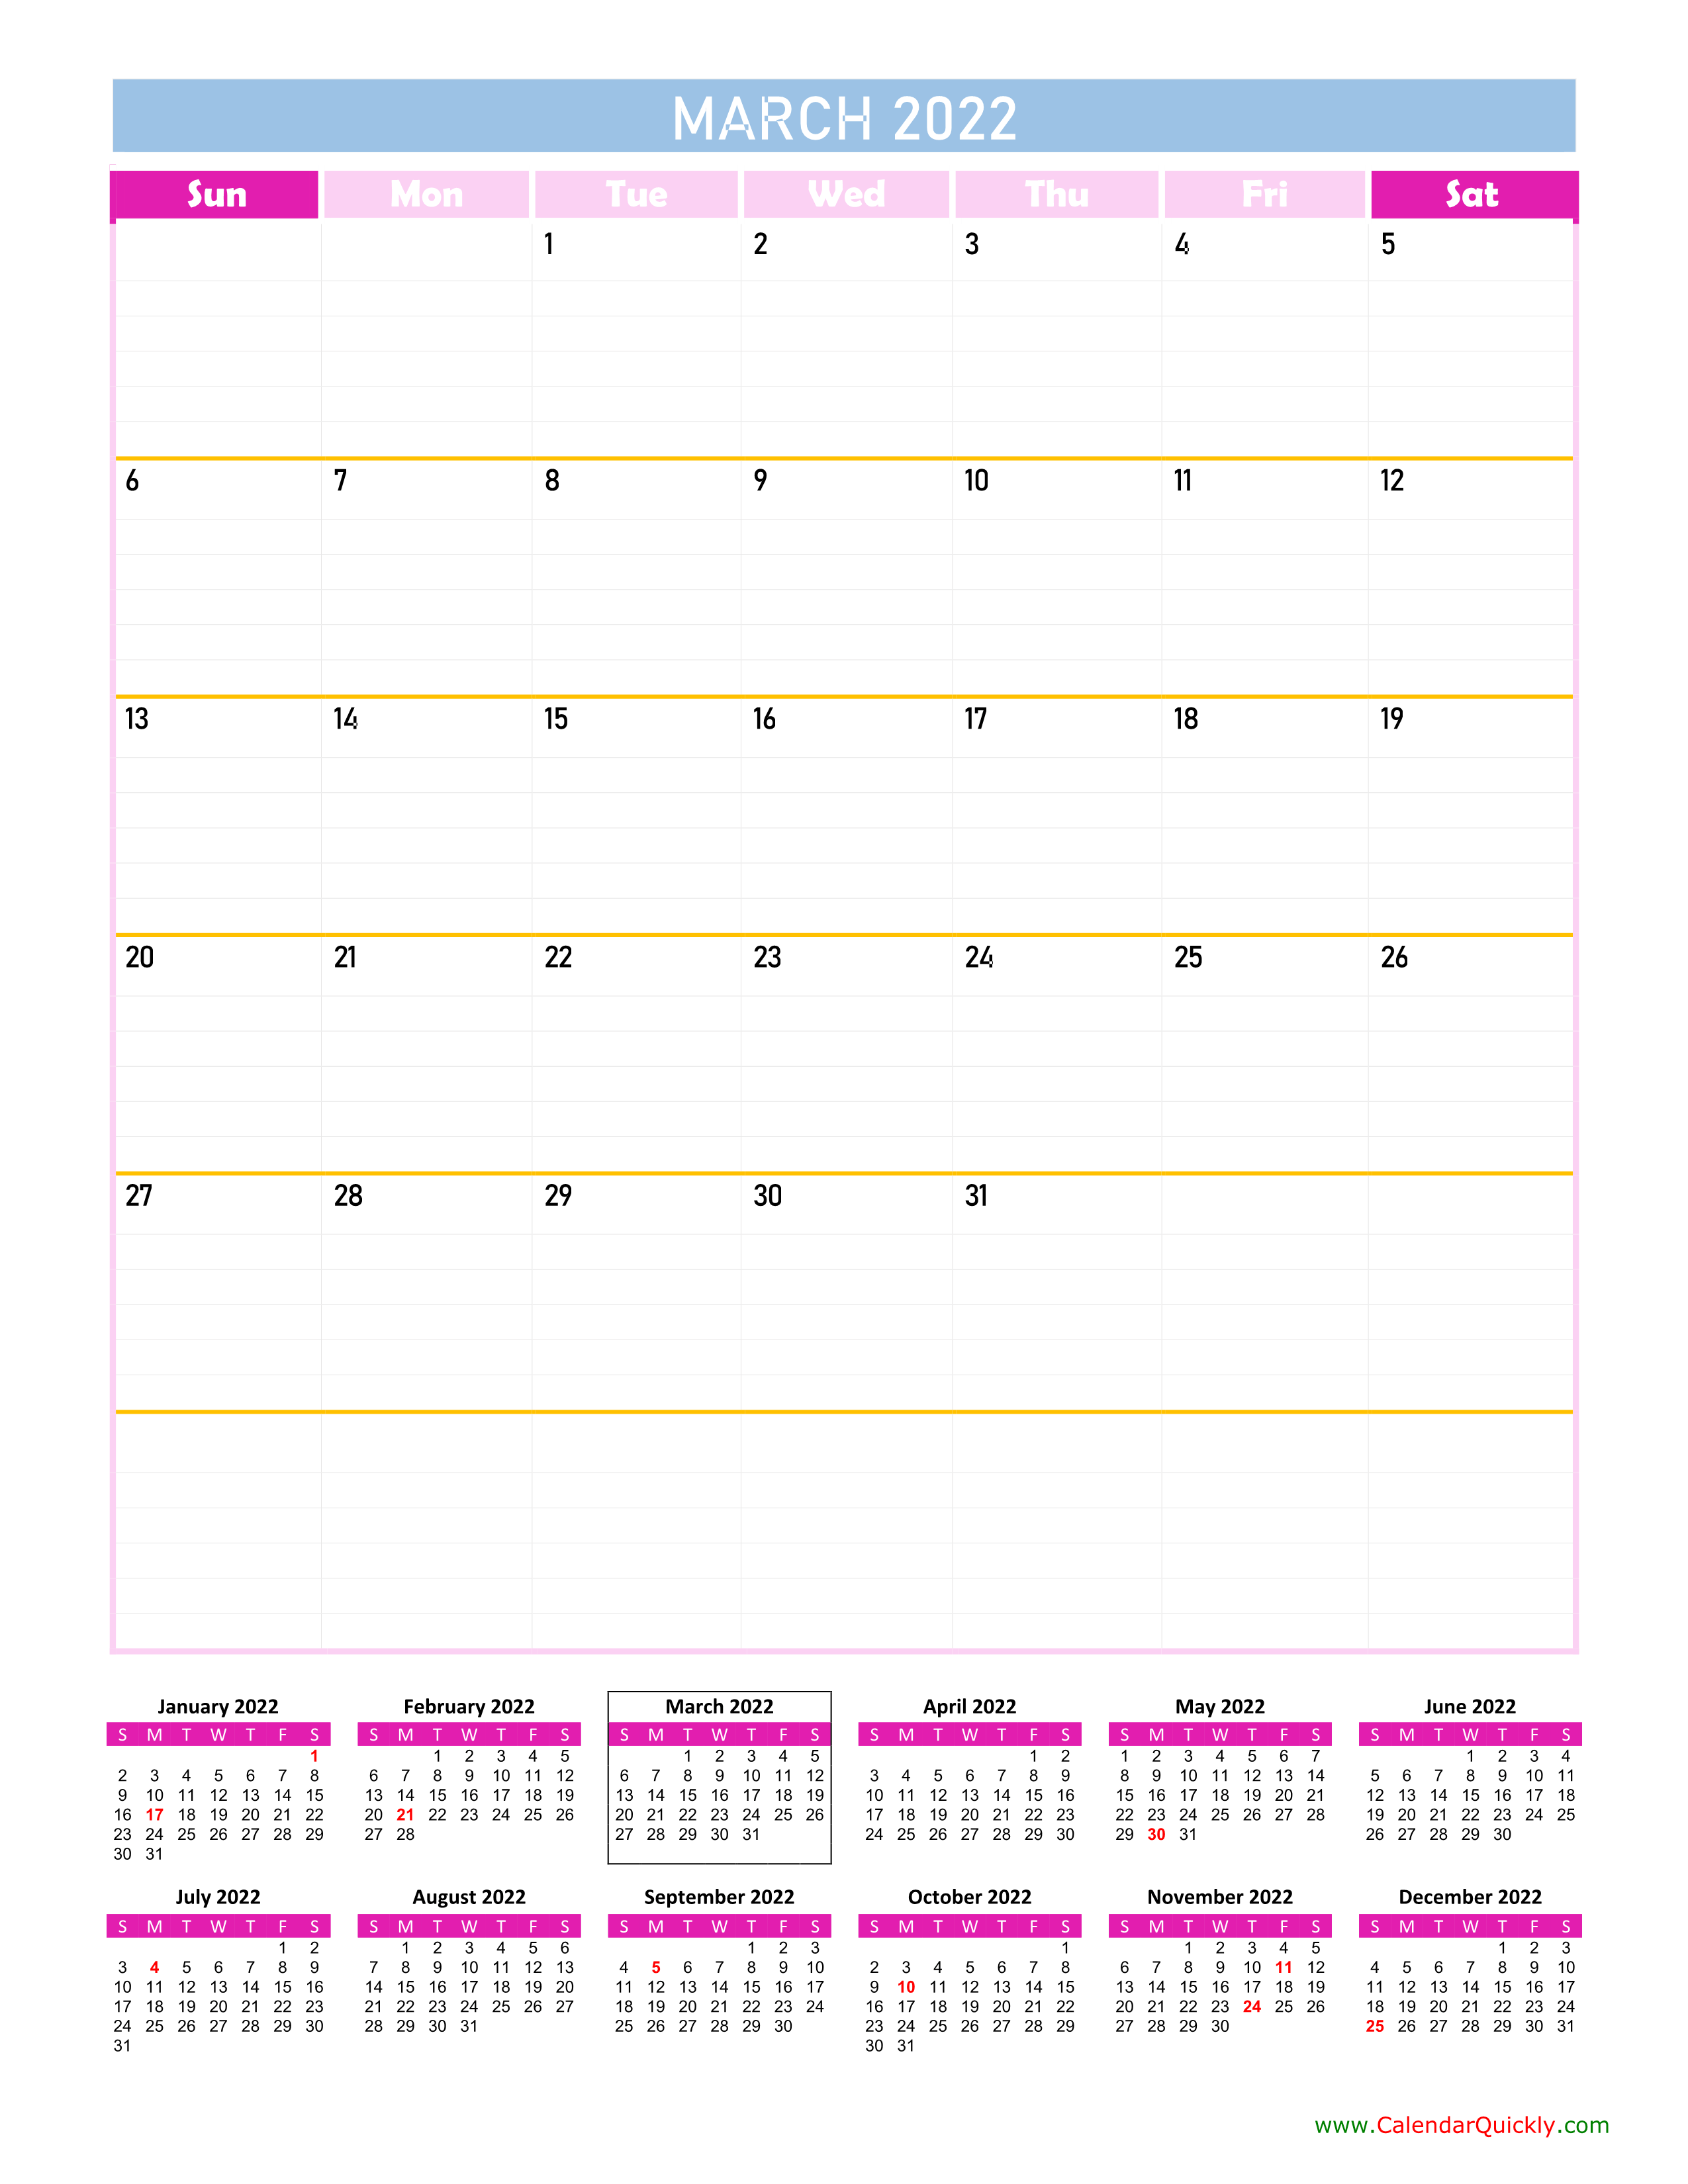 March Calendar 2022 Vertical   Calendar Quickly Intended For February March And April 2022 Calendar